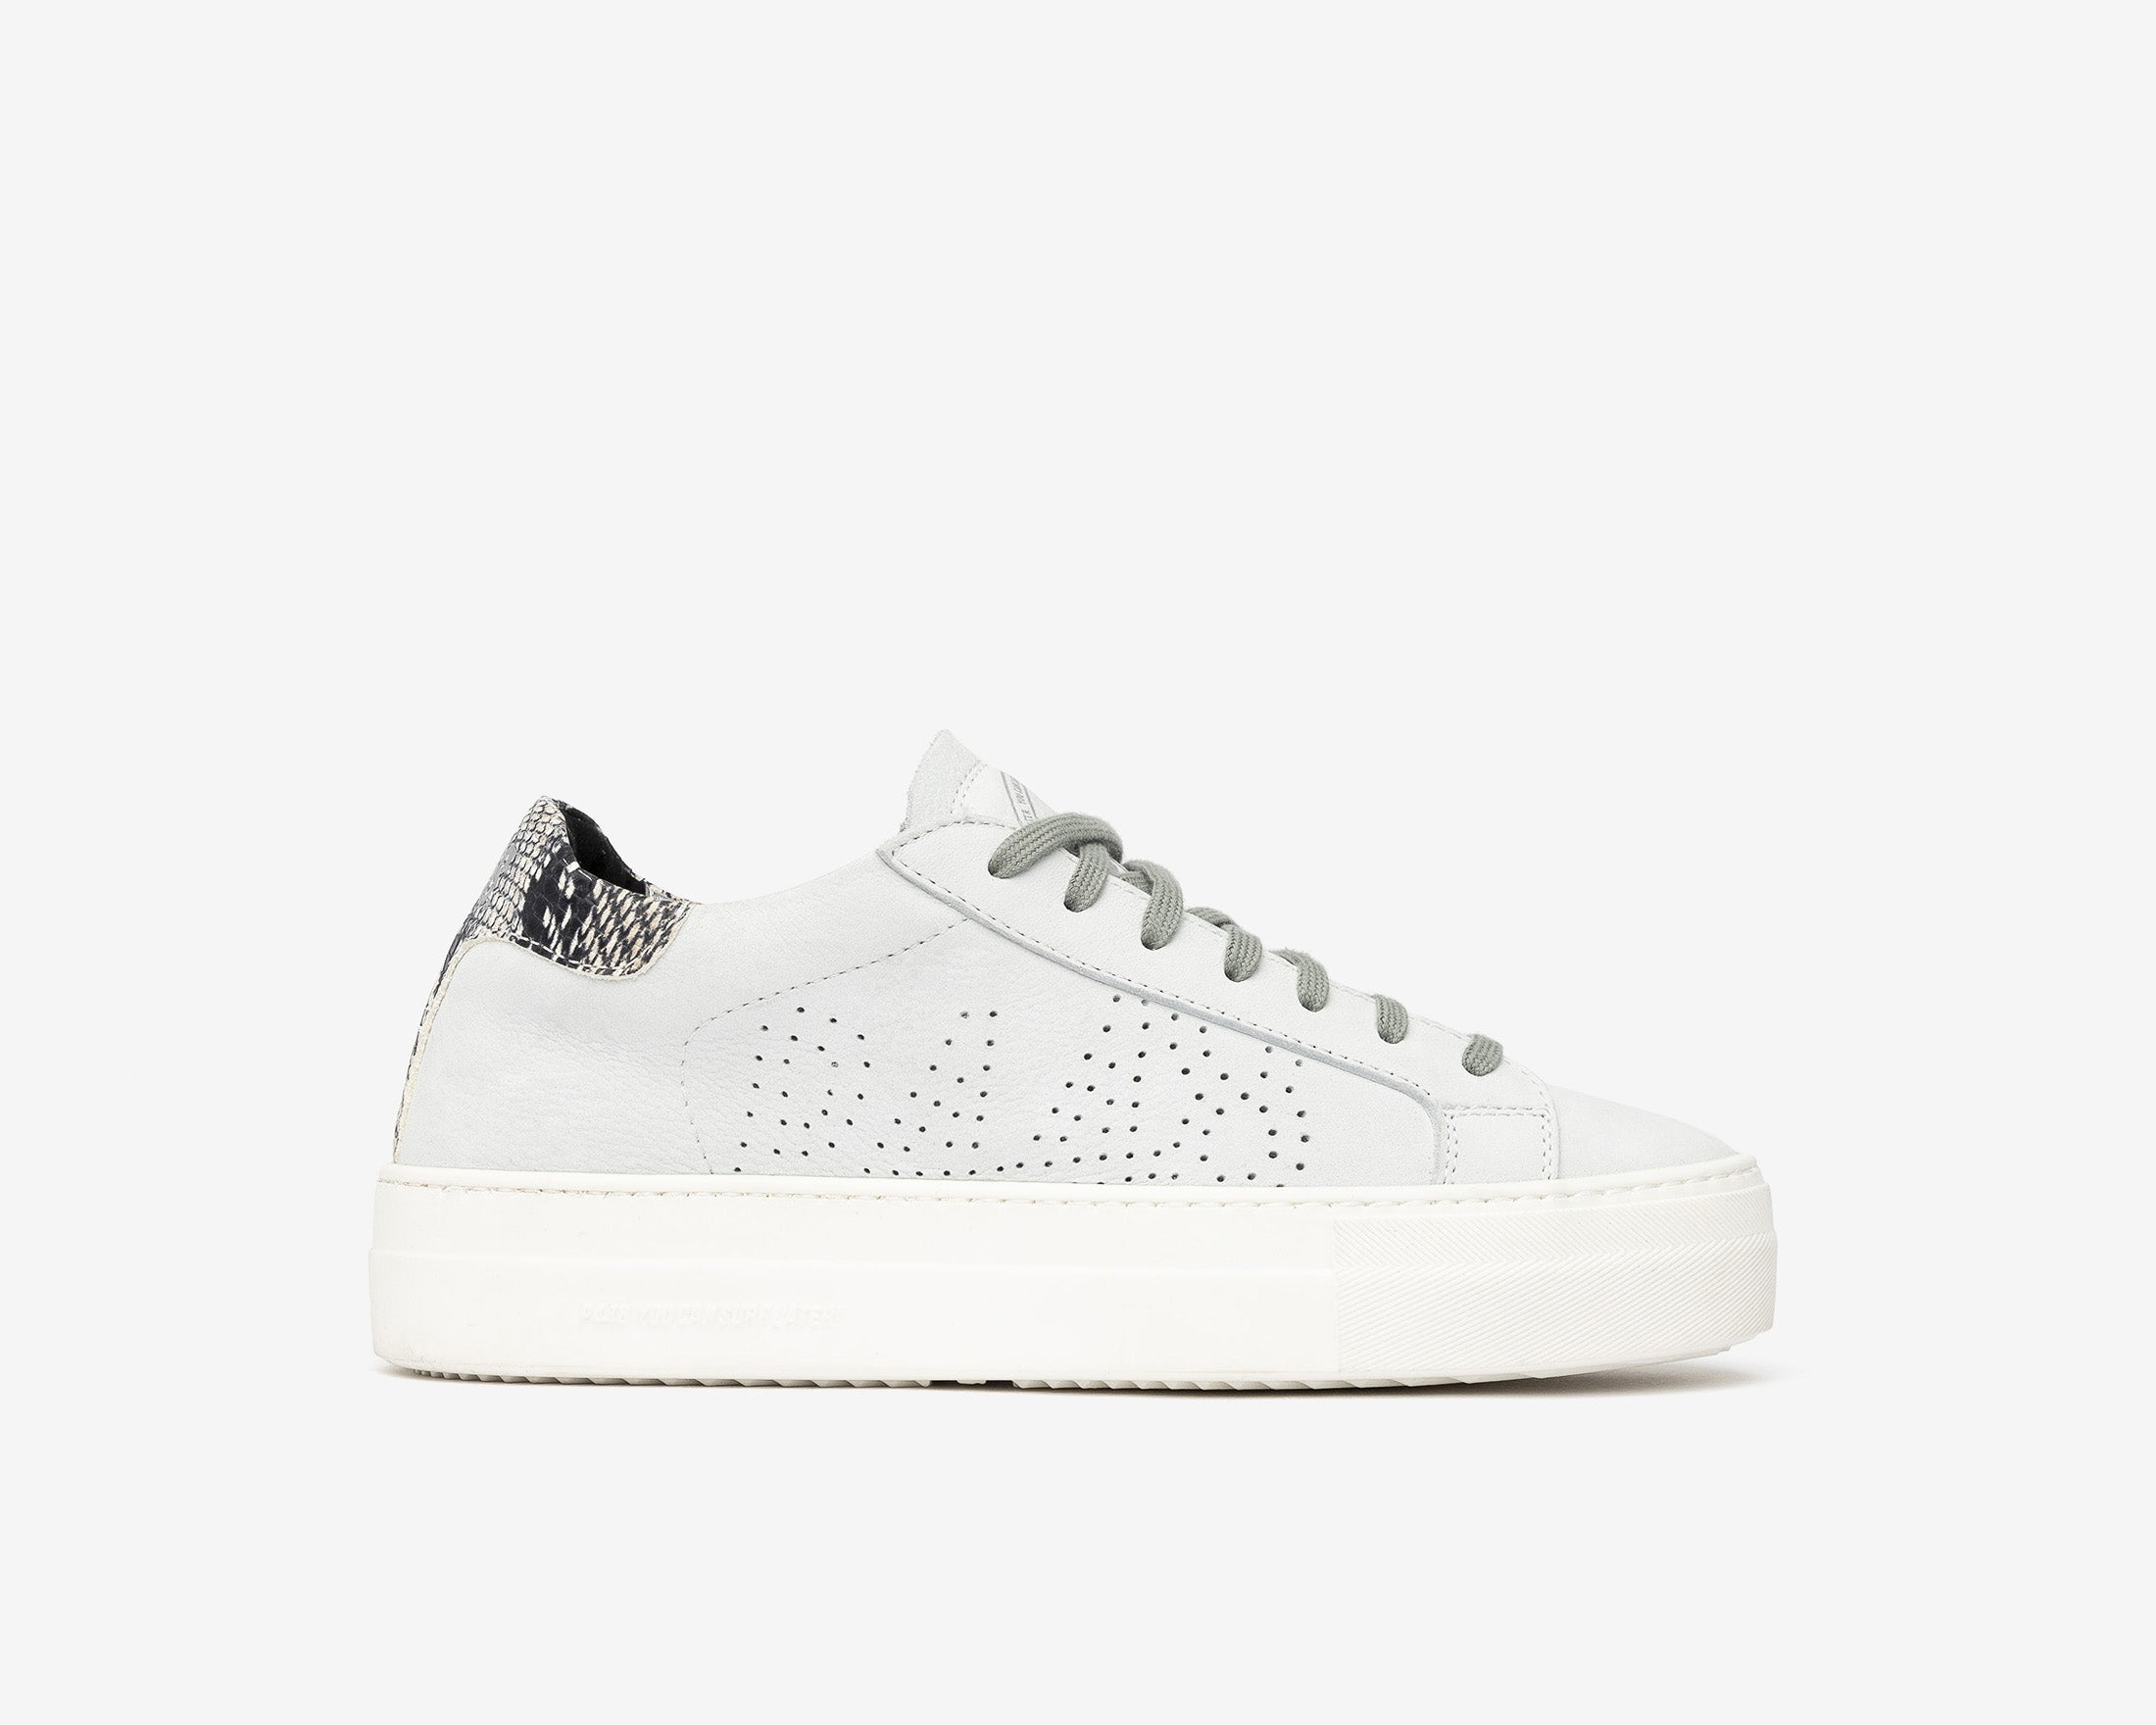 Thea Platform Sneaker in White/Twister Python - Profile